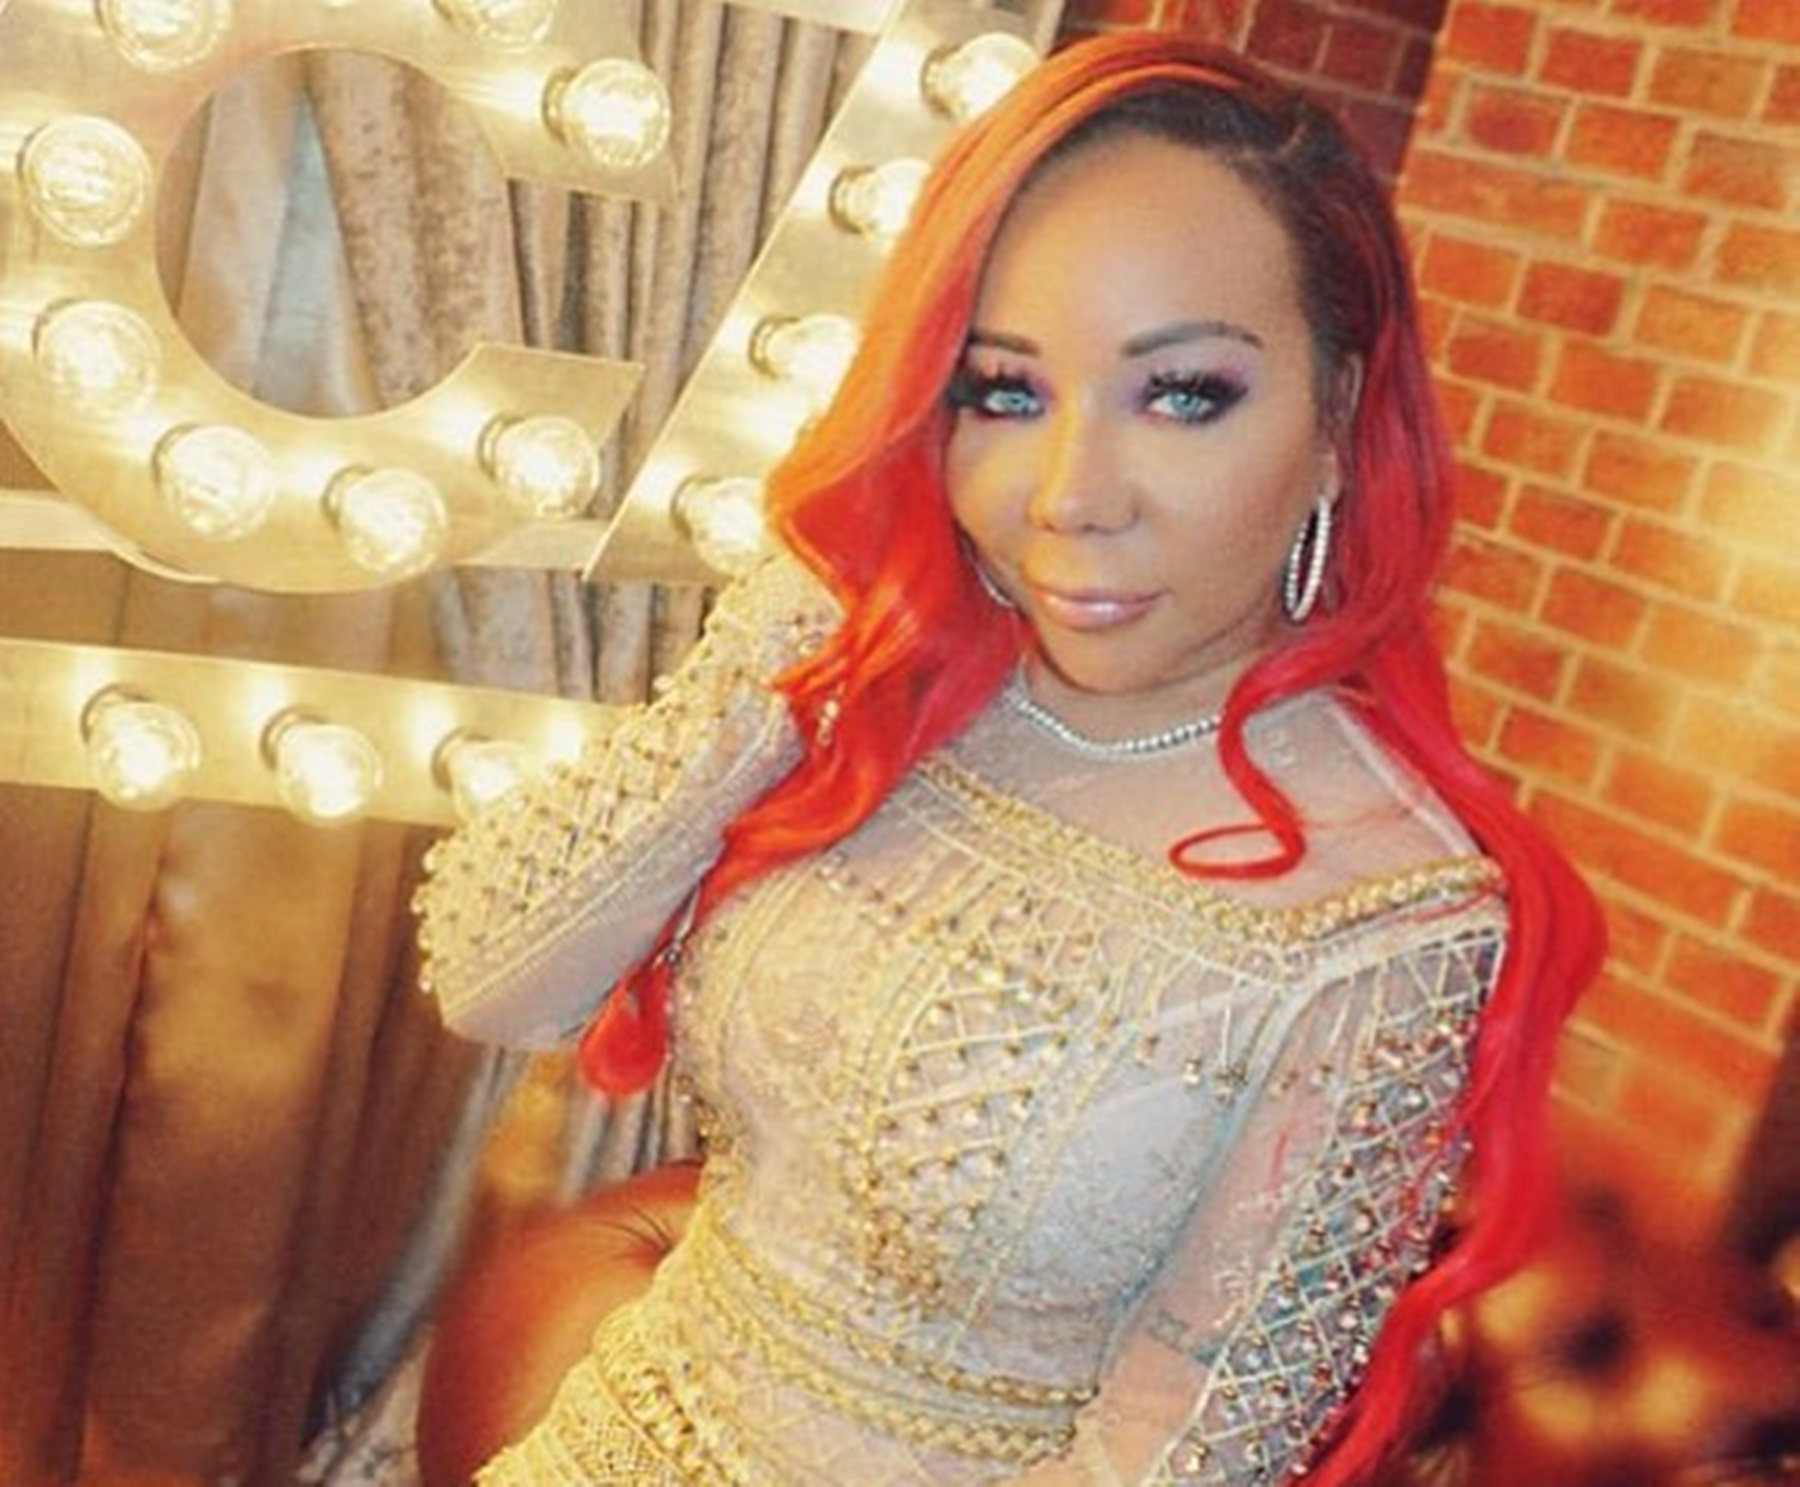 Tiny Harris' Video With Heiress Harris Will Make Your Day